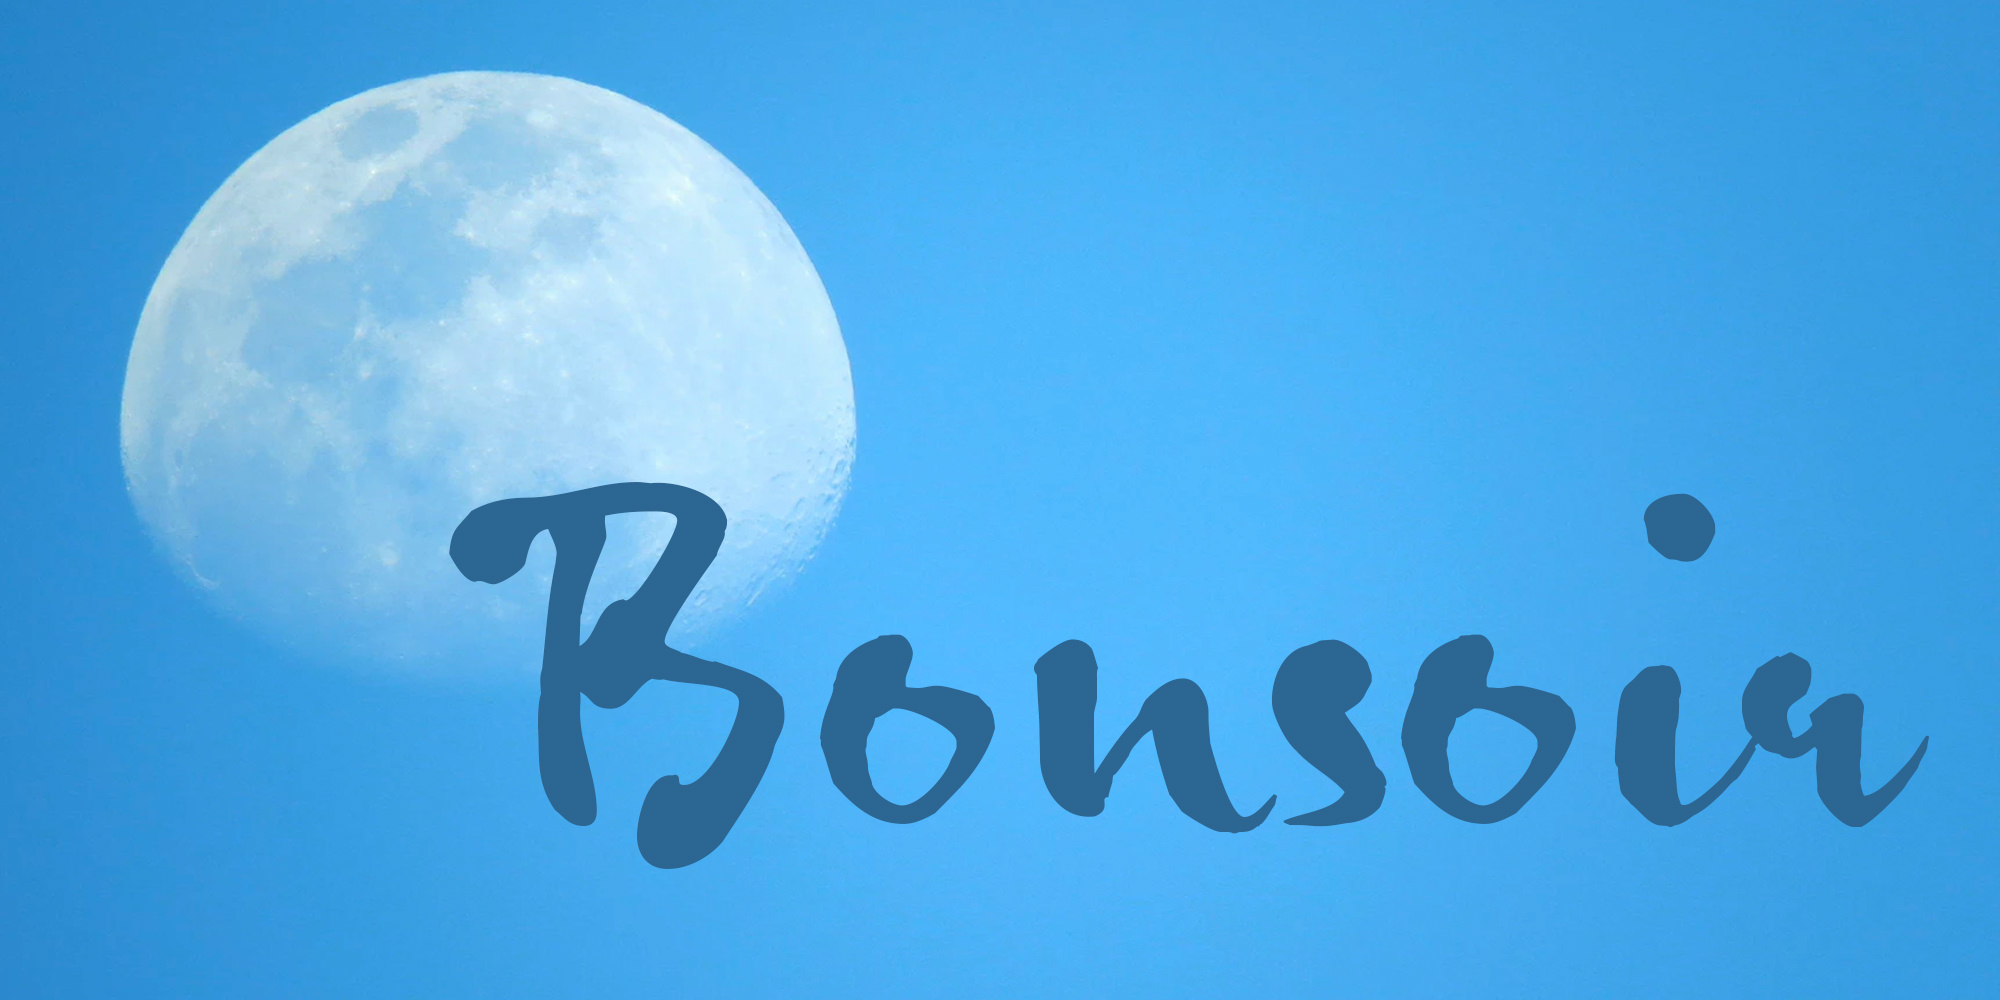 10 Greetings In French That Arent Bonjour Rosetta Stone